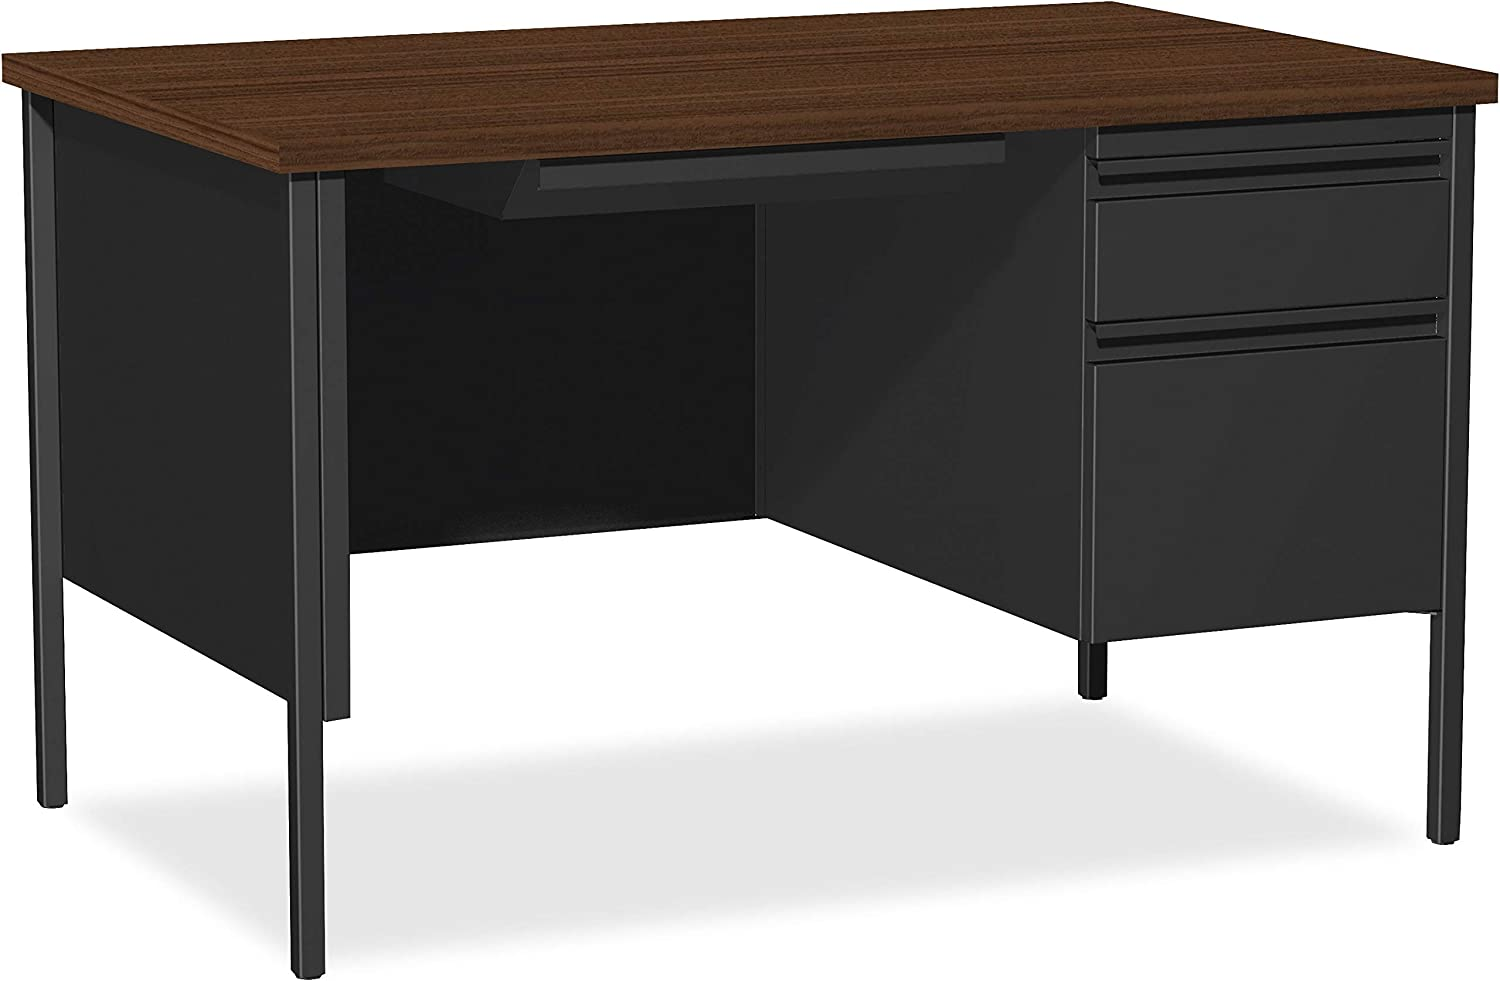 Lorell Single Right Pedestal Ranking TOP17 Desk 48 Ranking TOP19 29-1 Blac by 2-Inch 30